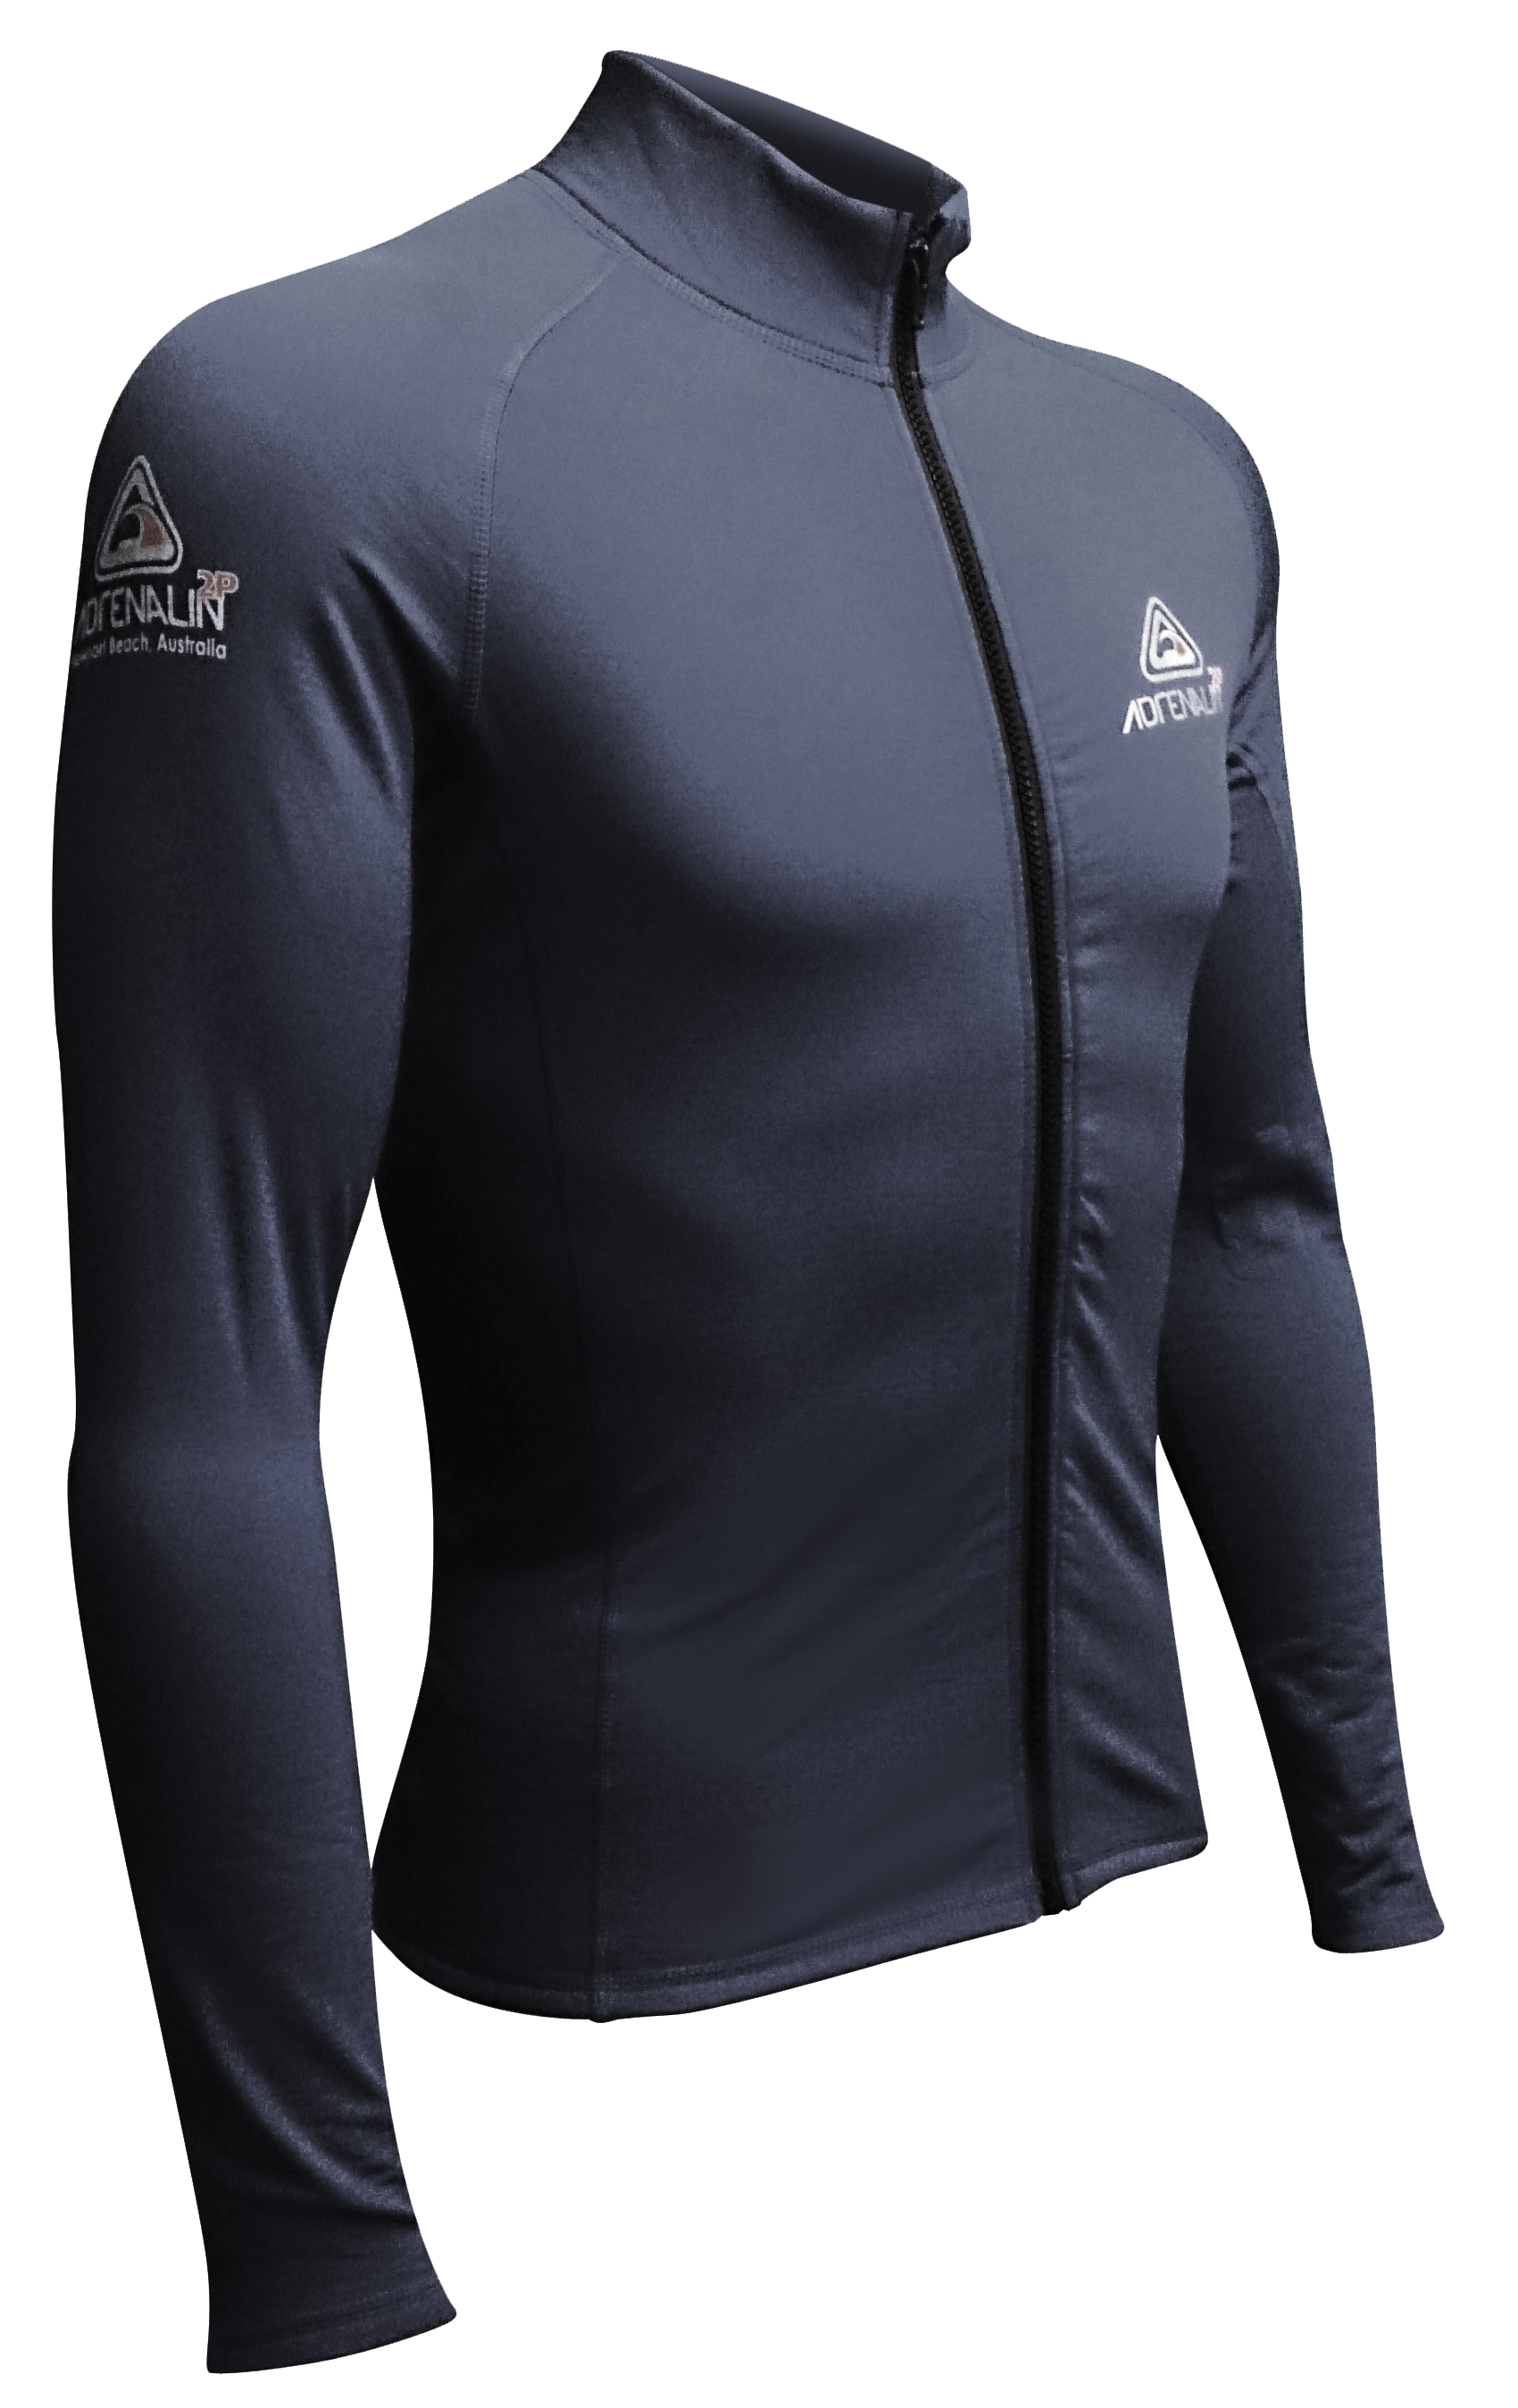 Adrenalin Zip Top Thermo Top